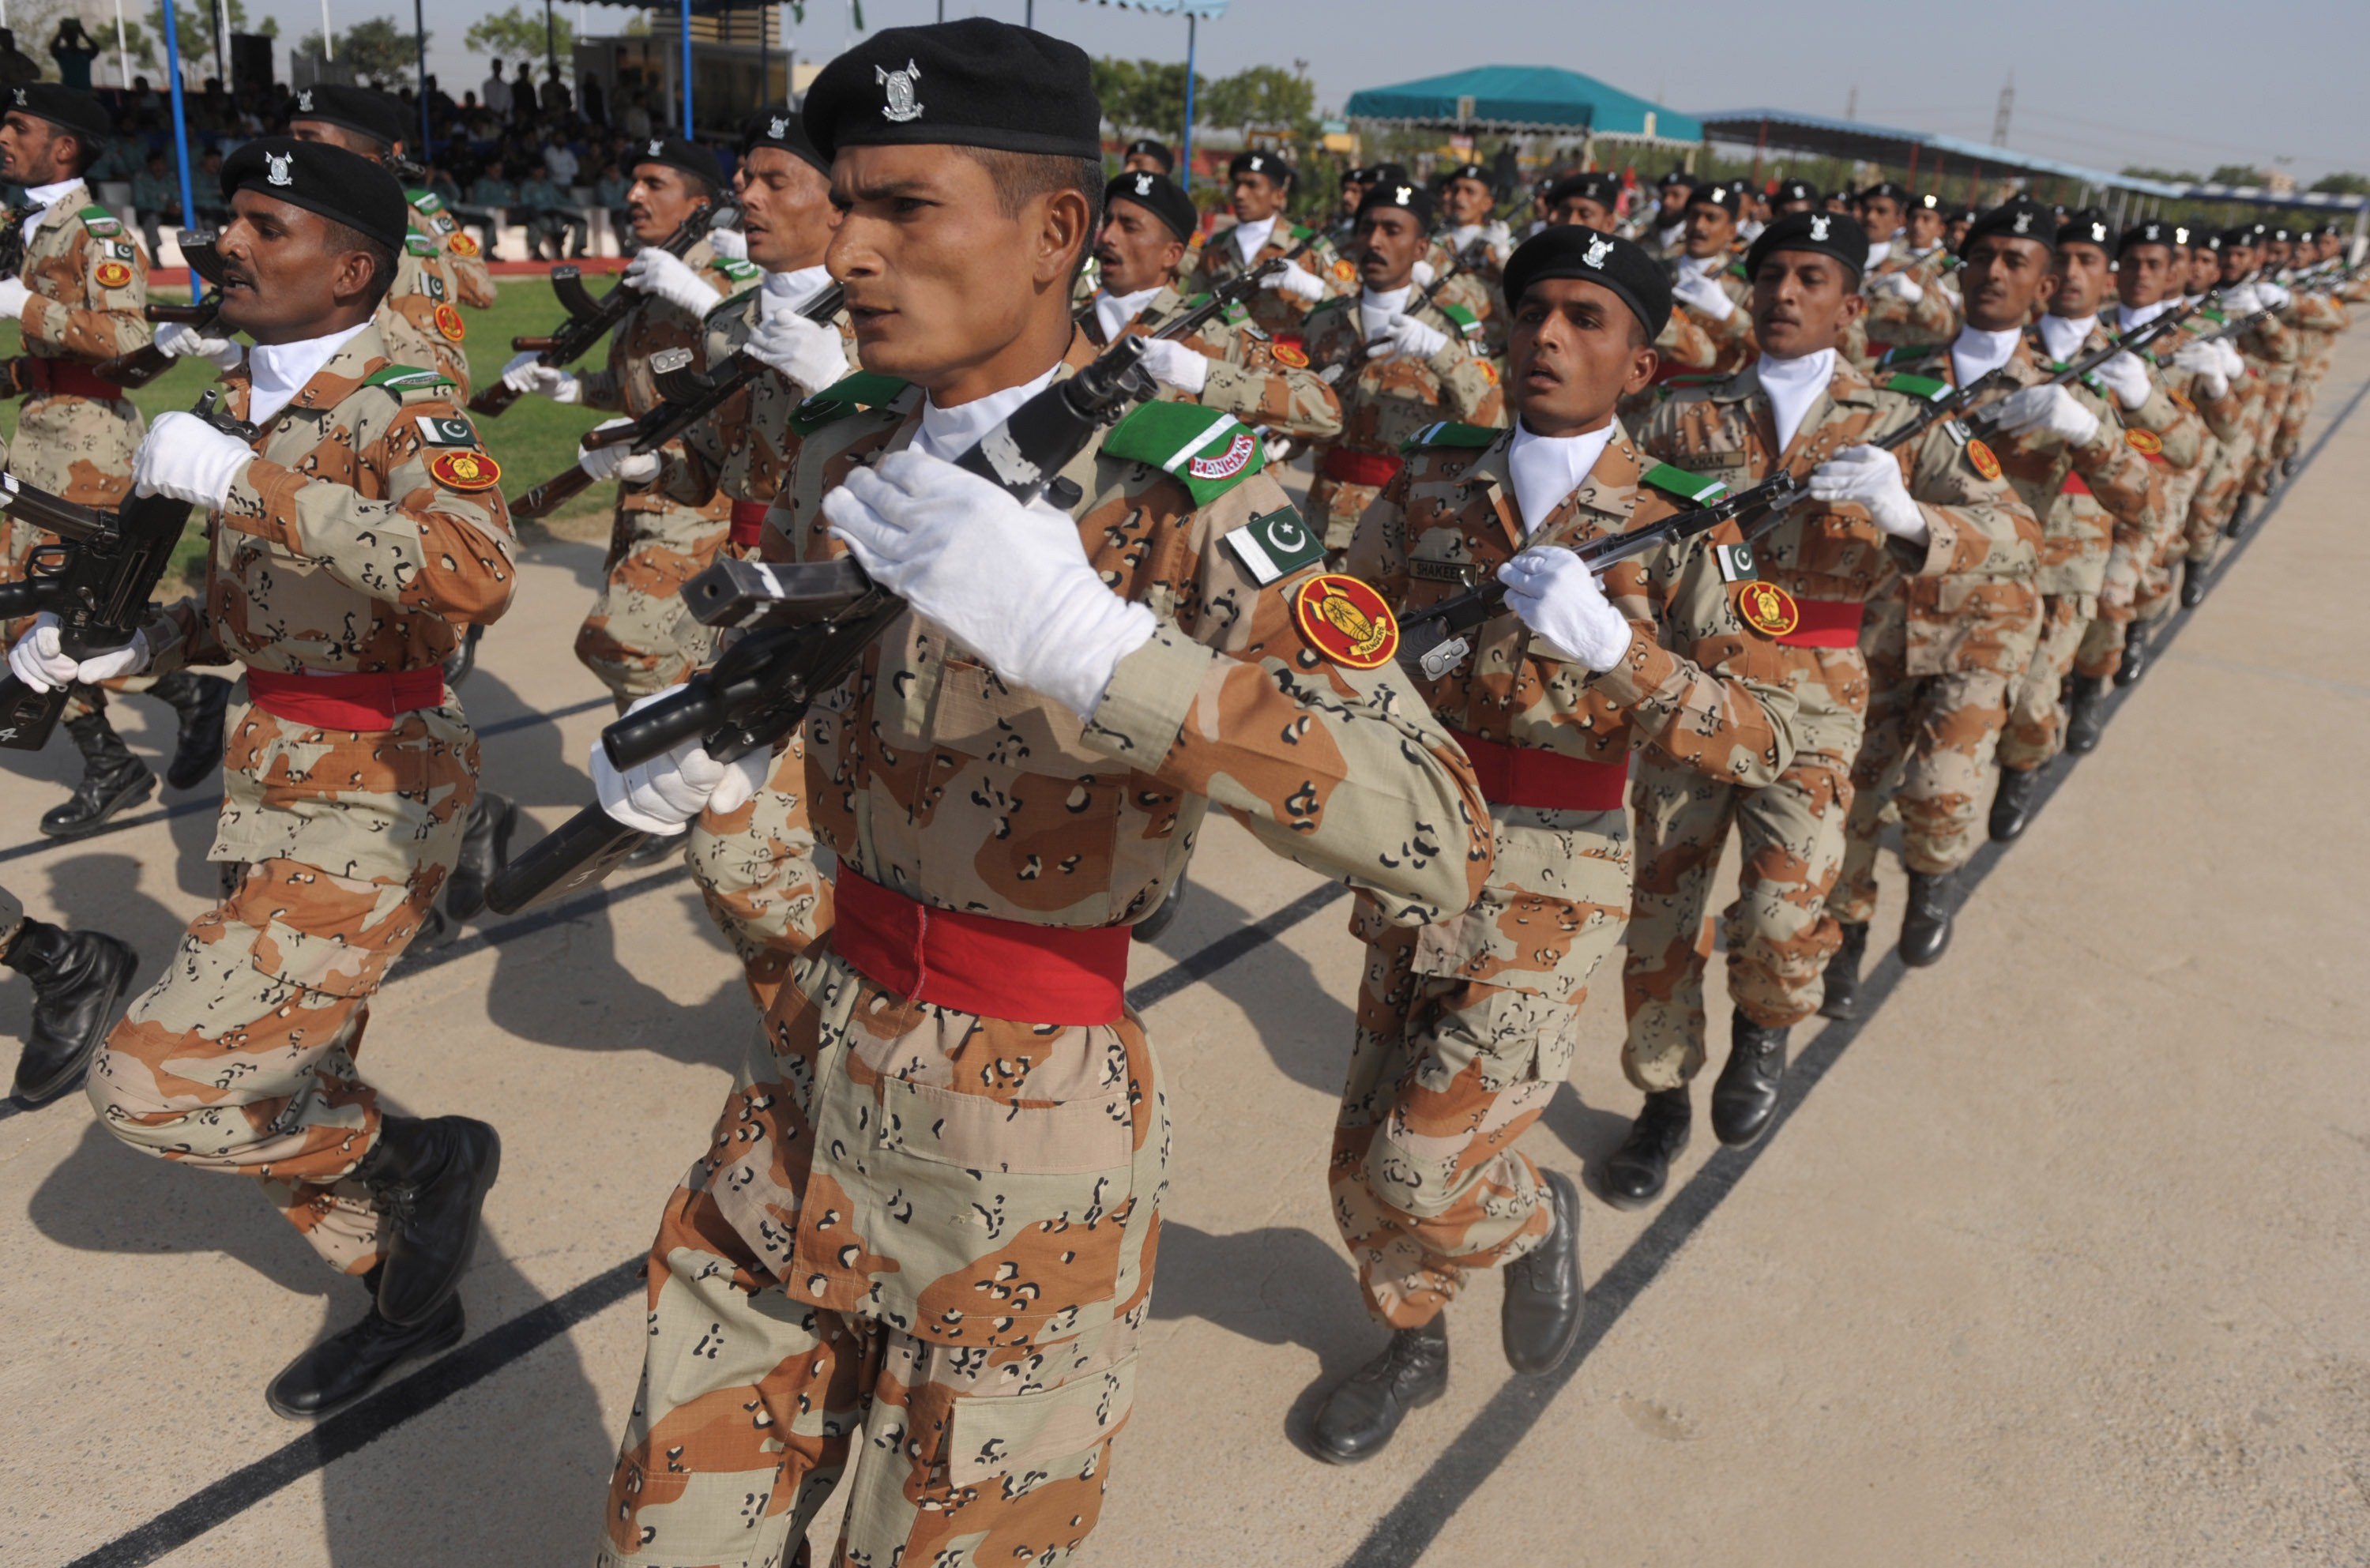 Pakistani paramilitary soldiers march during the 18th passing out parade for the Rangers basic recruits training course at the Sindh Rangers Training Centre in Karachi on Nov. 11, 2014